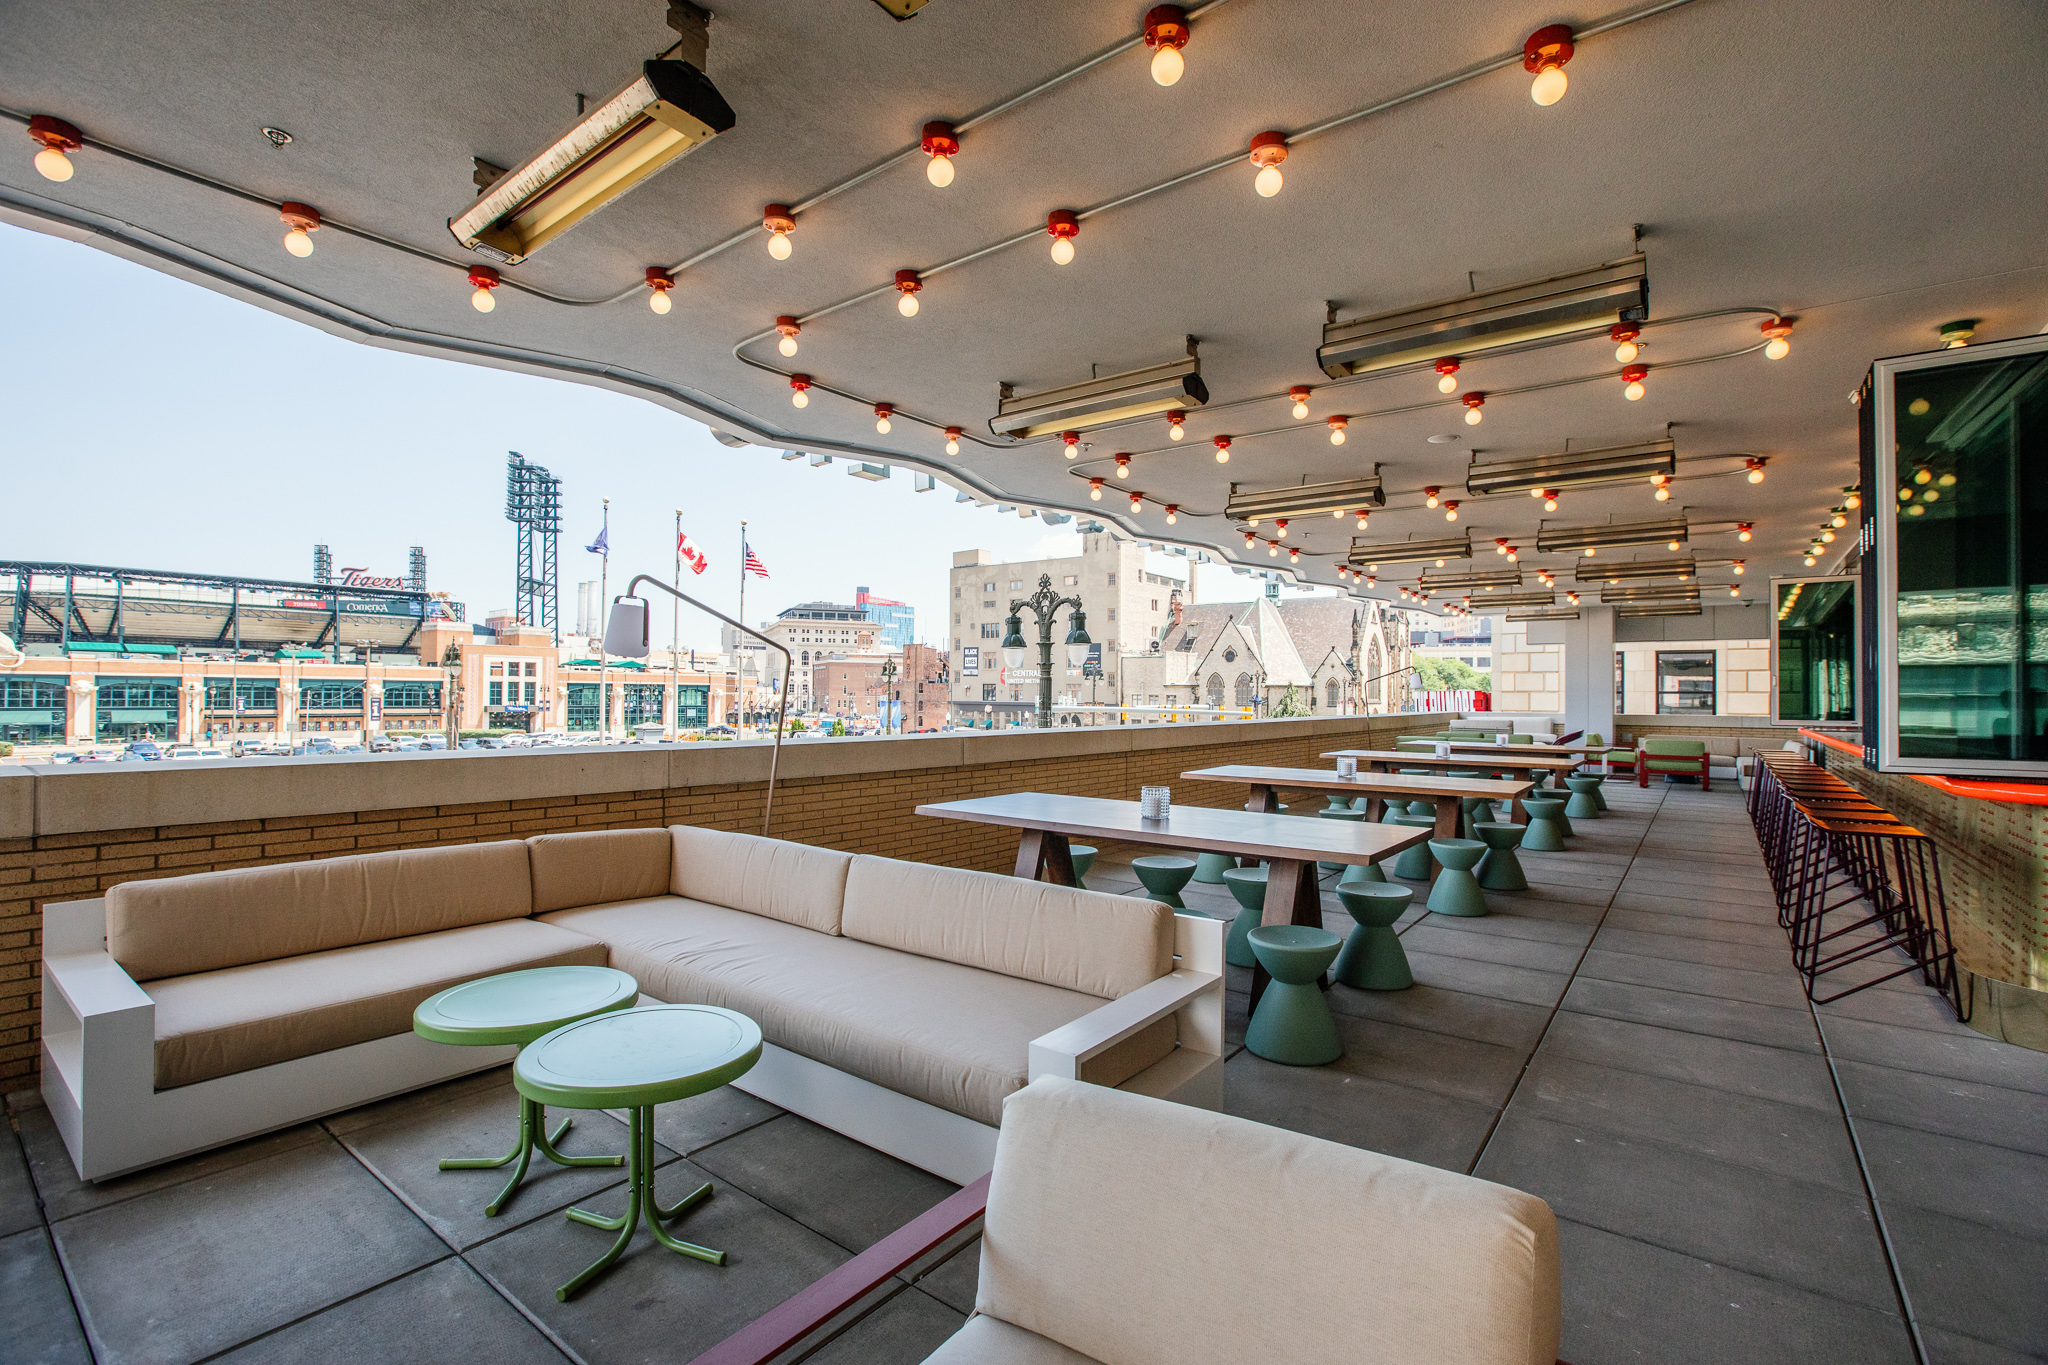 A patio with an indoor-outdoor bar and varied sofa and table seating looks out onto Woodward and Comerica Park